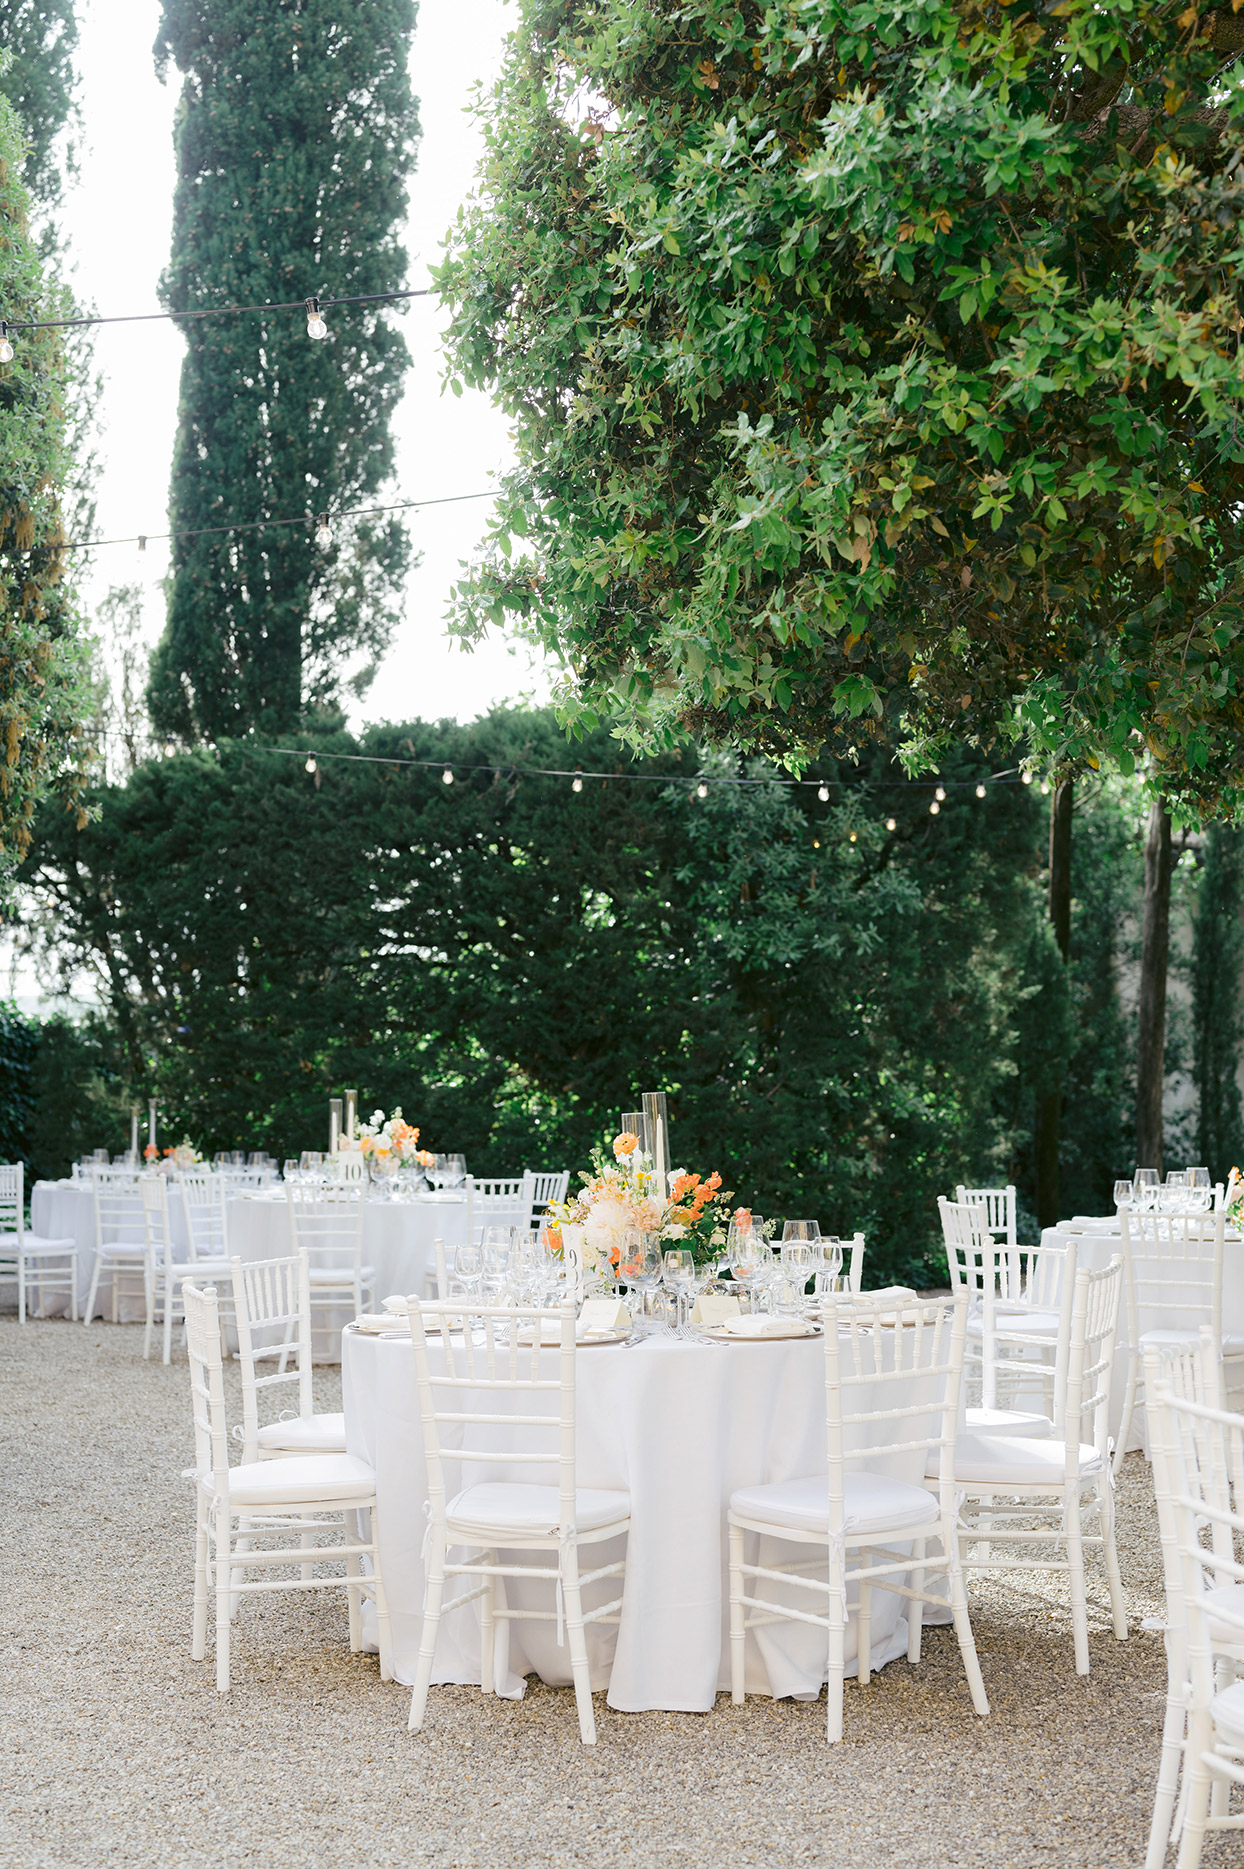 jennifer tobias wedding reception white tables and chairs